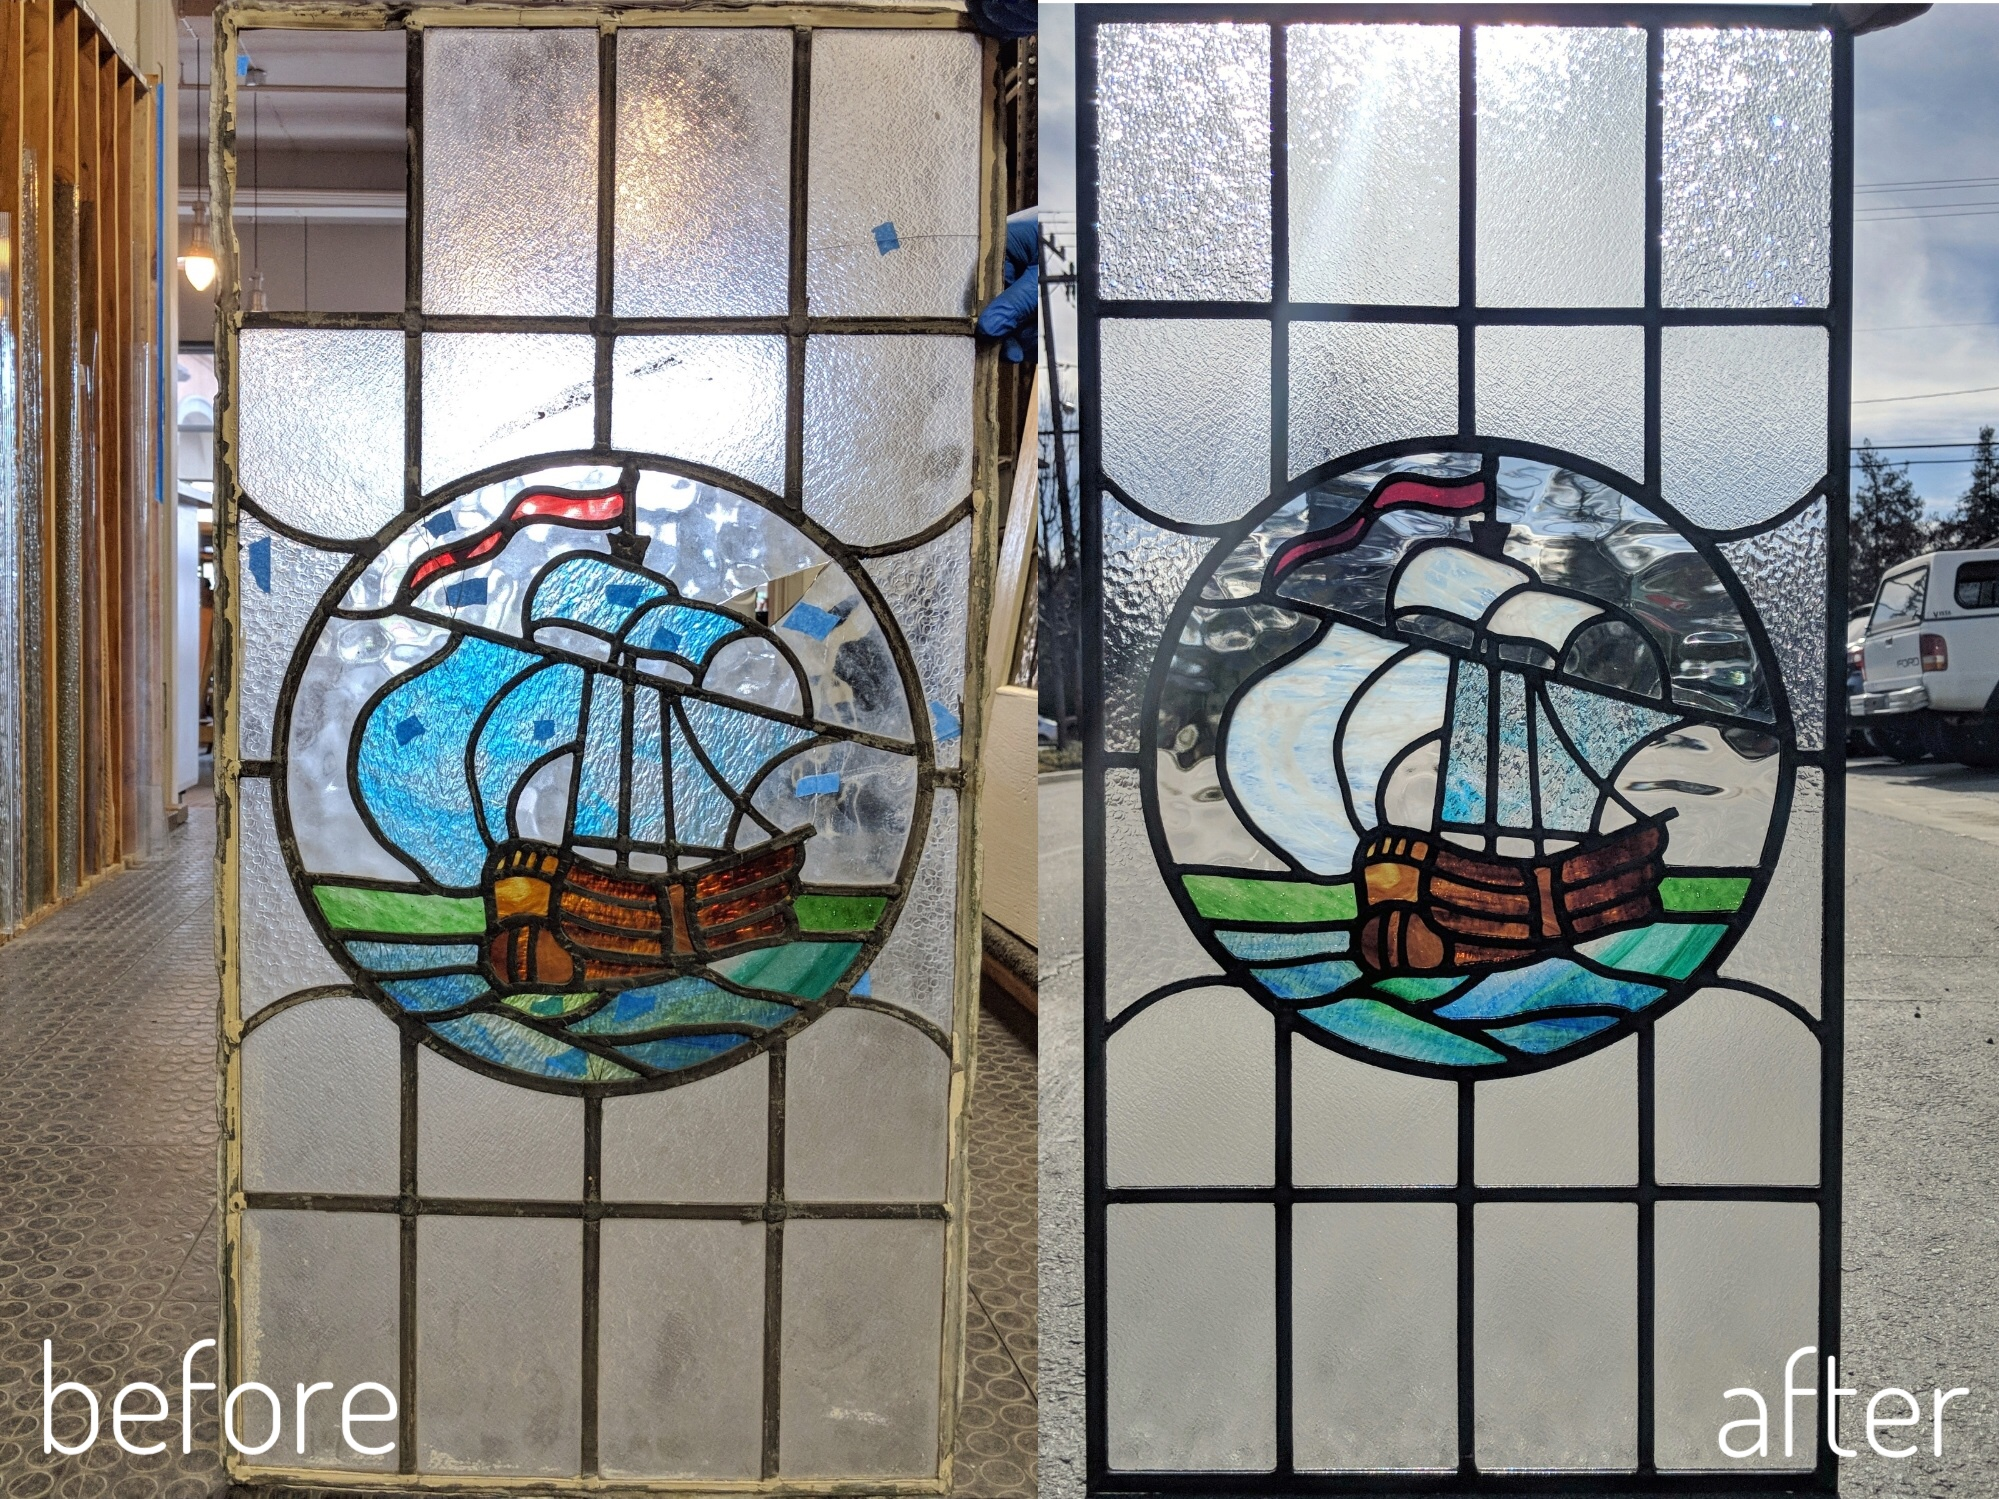 stained glass leaded glass design legacy glass studios menlo park bay area california stained glass repair before and after sailboat reclaimed window.JPG